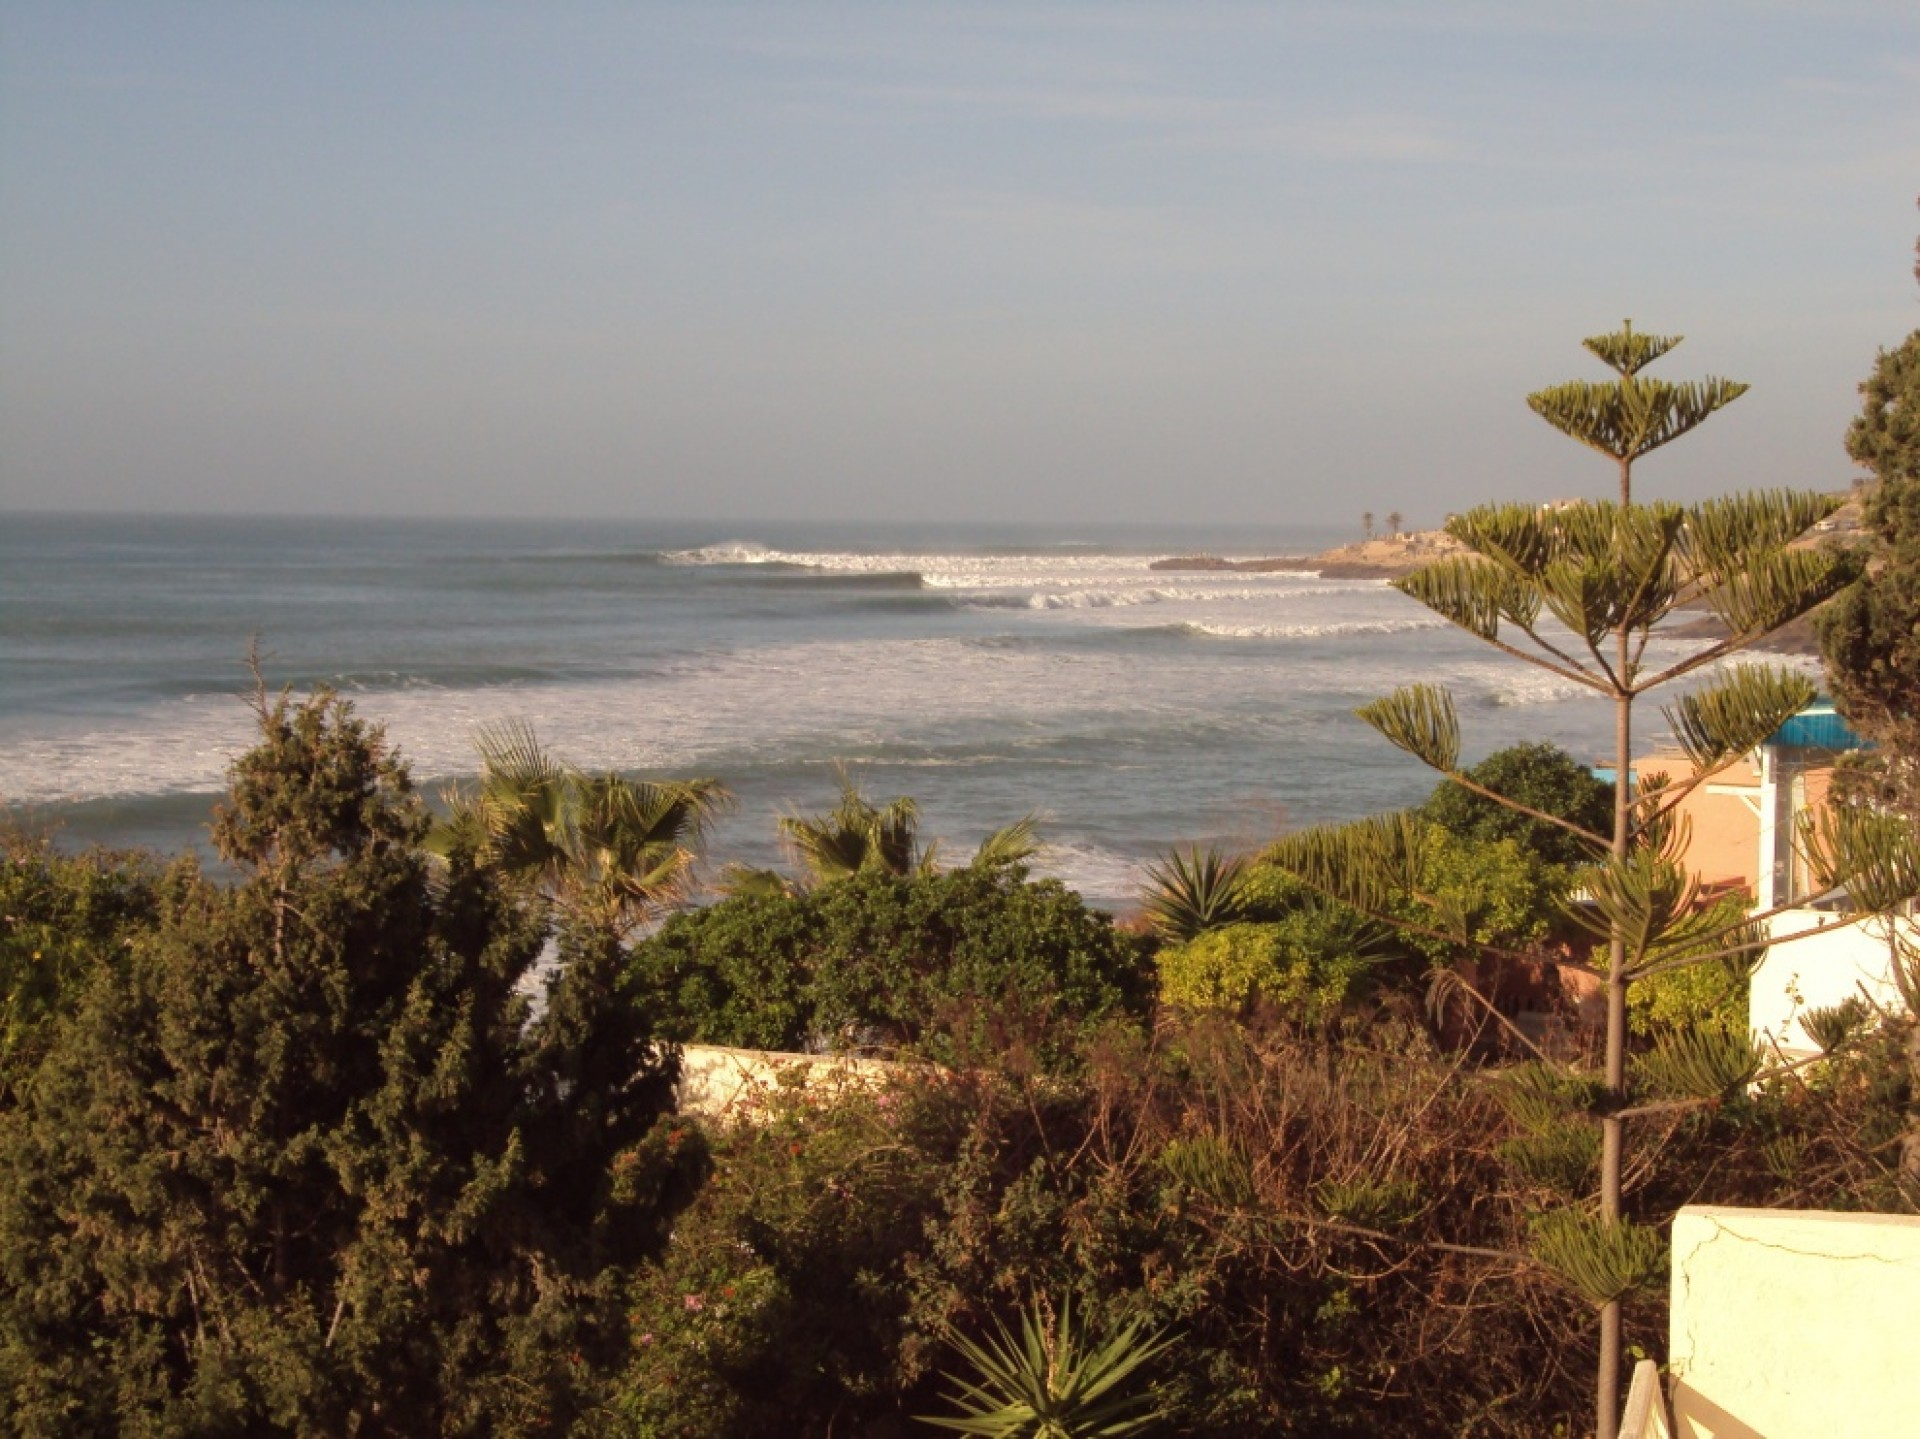 Africa Extrem's photo of Anchor Point